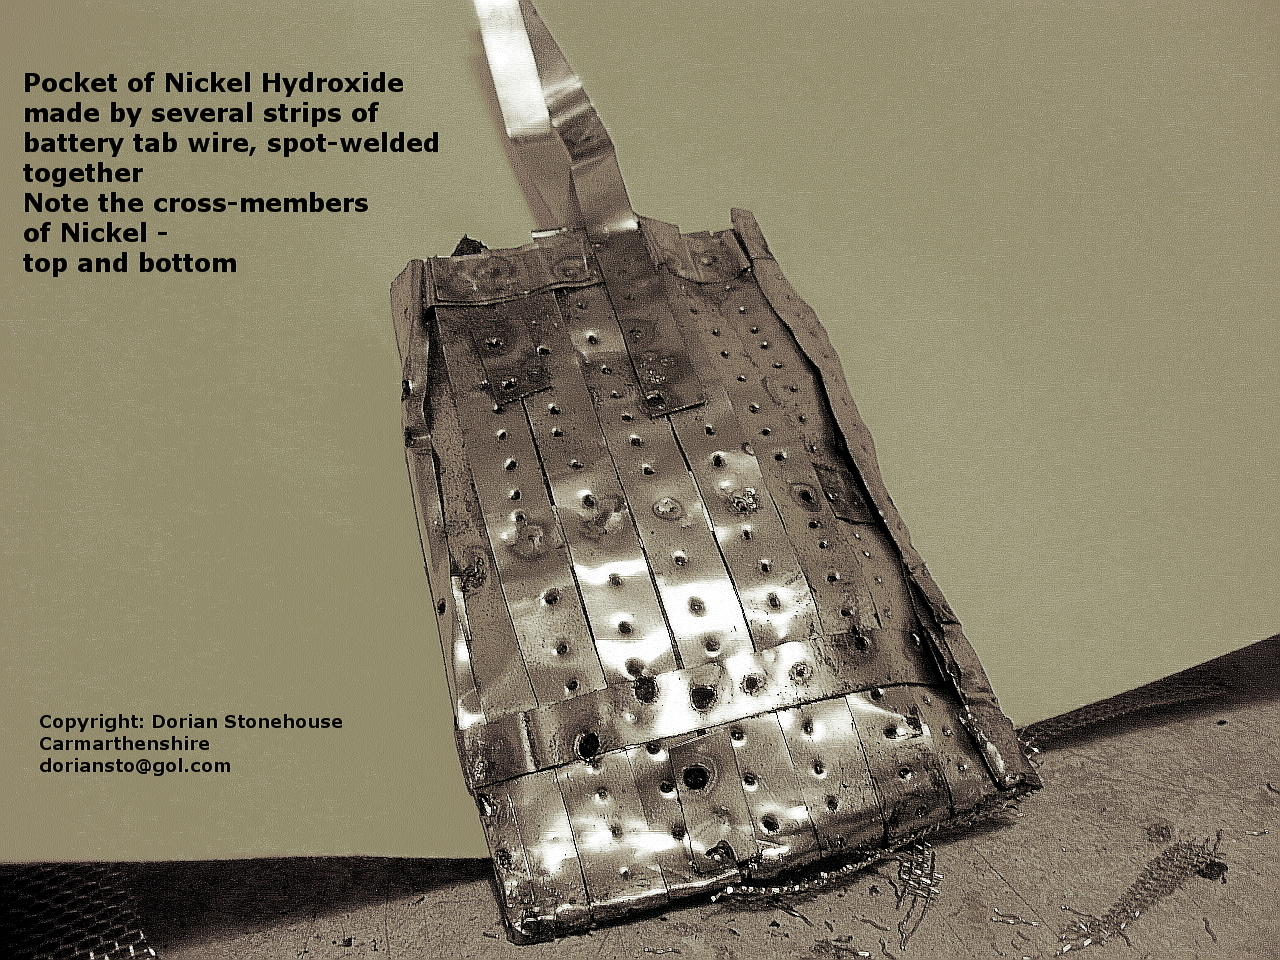 Nickel pocket containing nickel hydroxide, and spot welded together using battery tabs